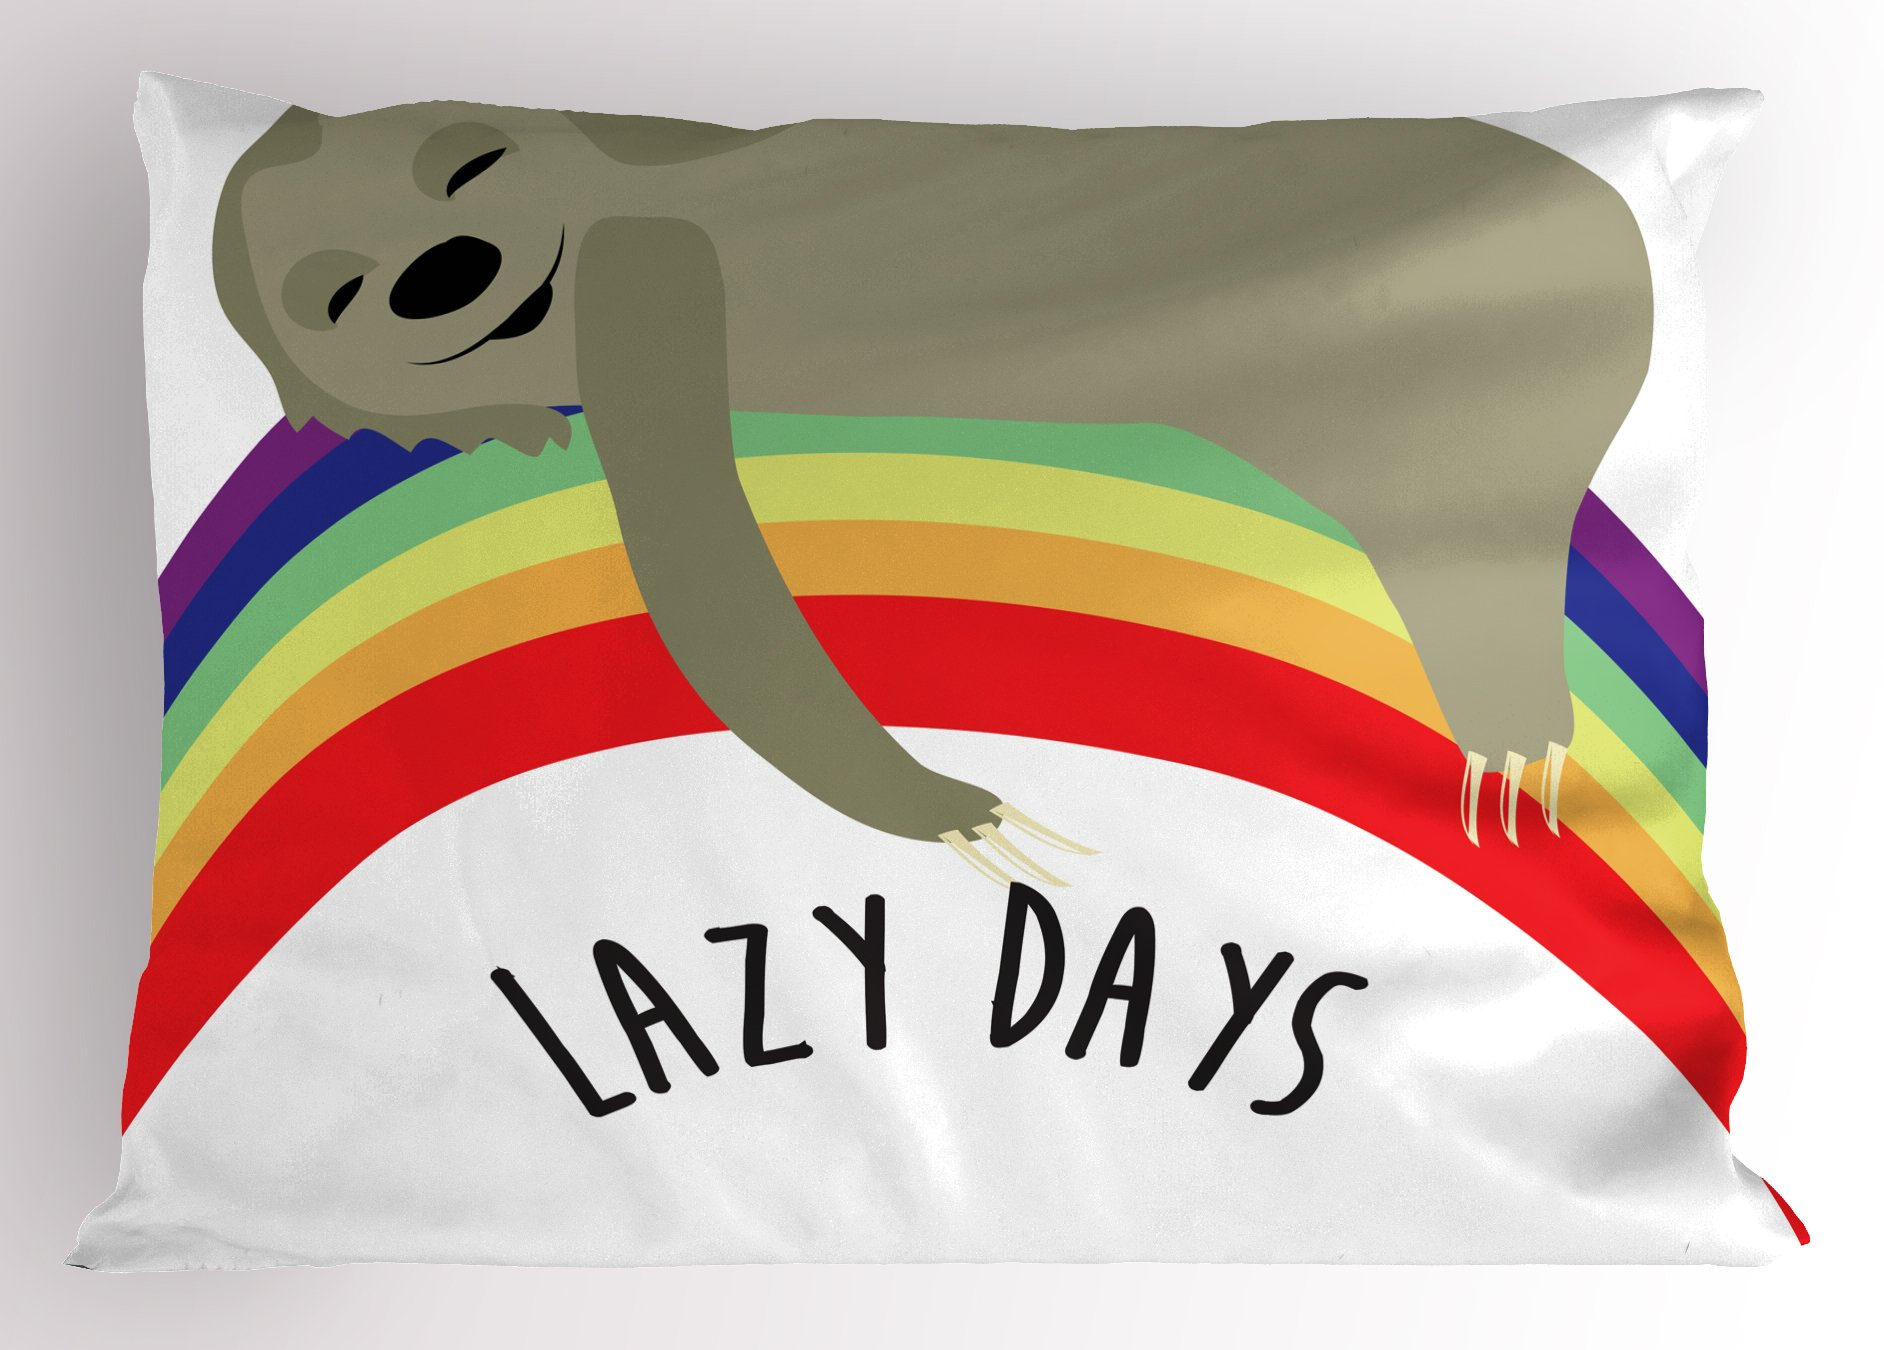 Ambesonne Sloth Pillow Sham, Lazy Days Phrase with Carefree Sloth Figure on Rainbow Happiness Relaxation Theme, Decorative Standard Queen Size Printed Pillowcase, 30 X 20 Inches, Multicolor